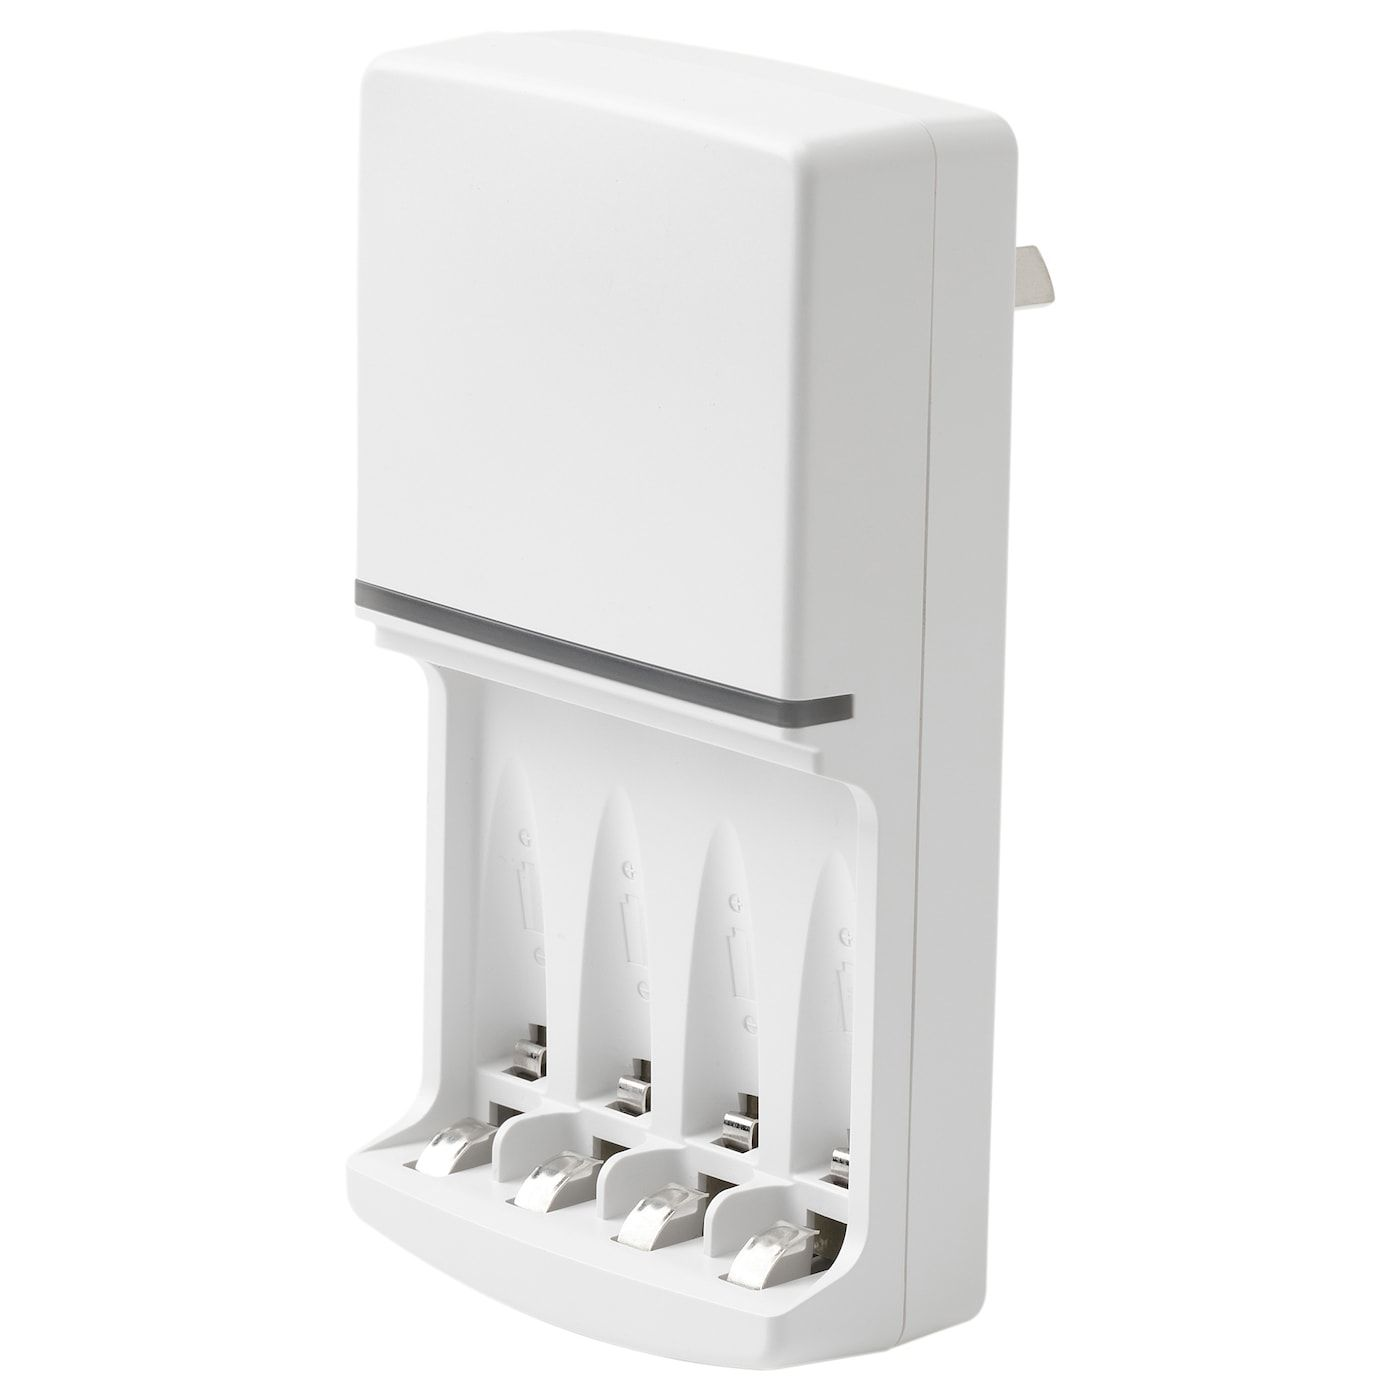 Kvarts Battery Charger Ikea Battery Charger Charger Battery